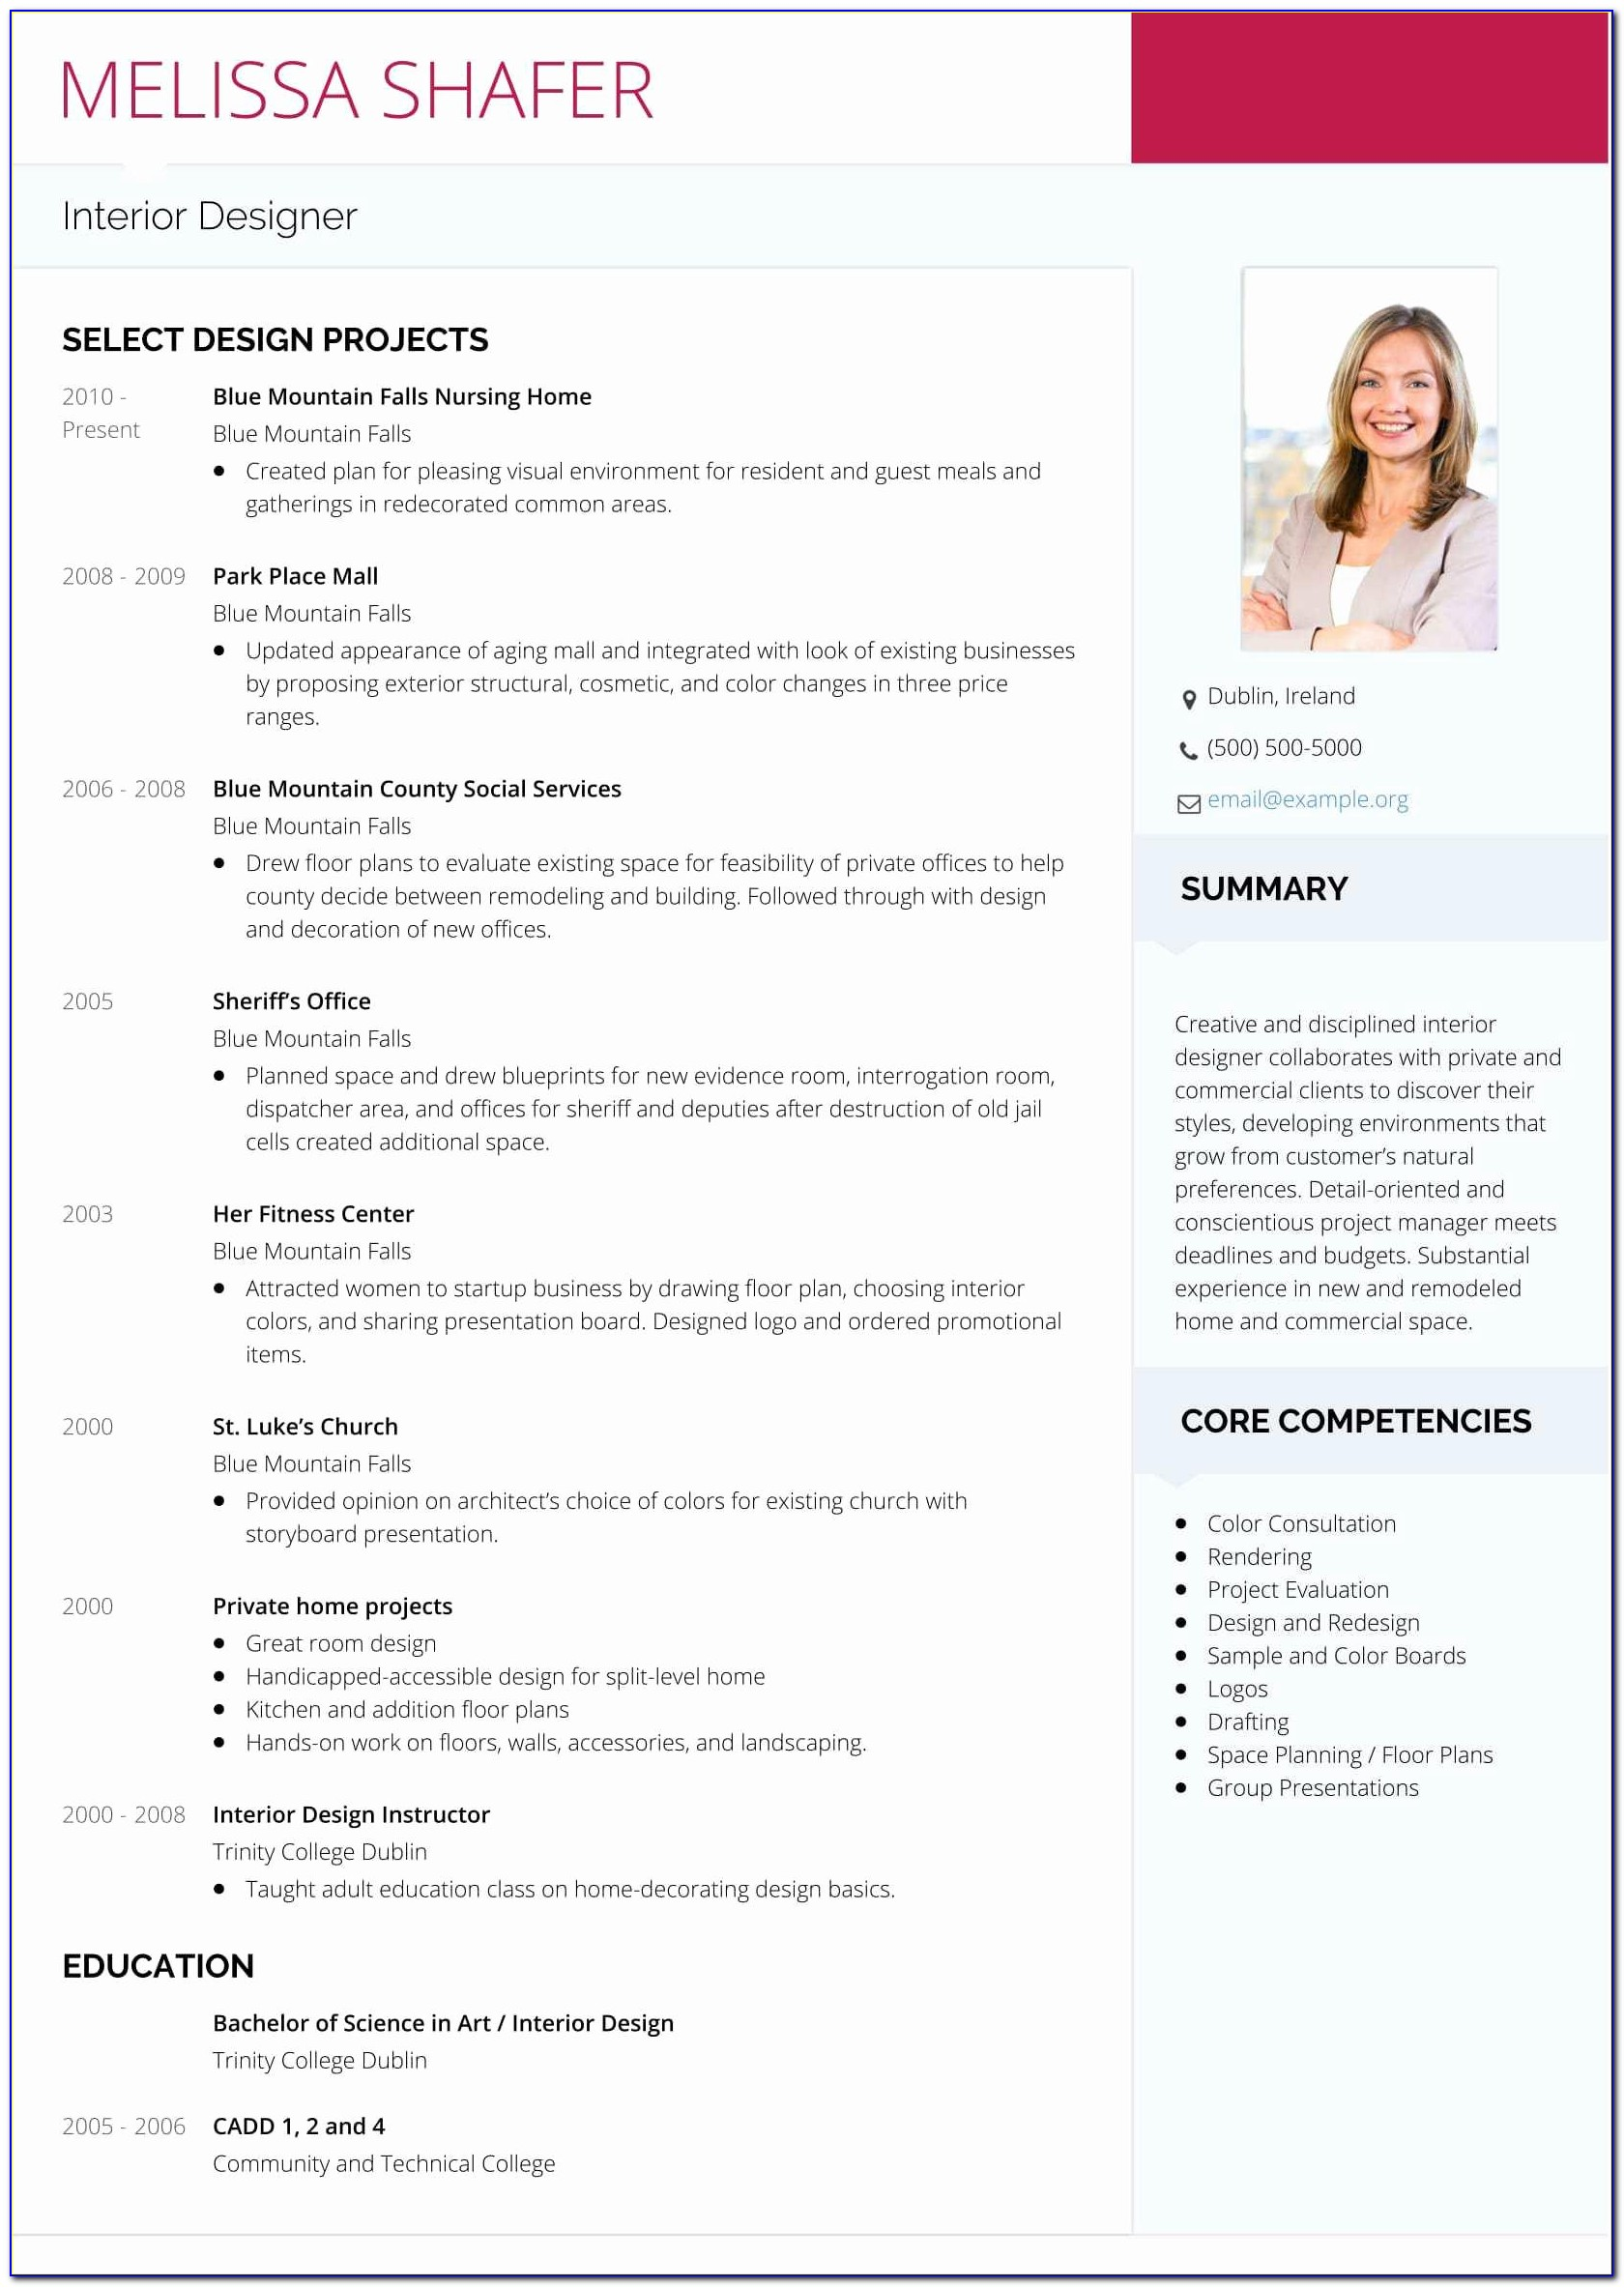 Interior Designer Resume Format Download Elegant Interior Design Resume Examples Designer Cv Template Download Ex Sevte